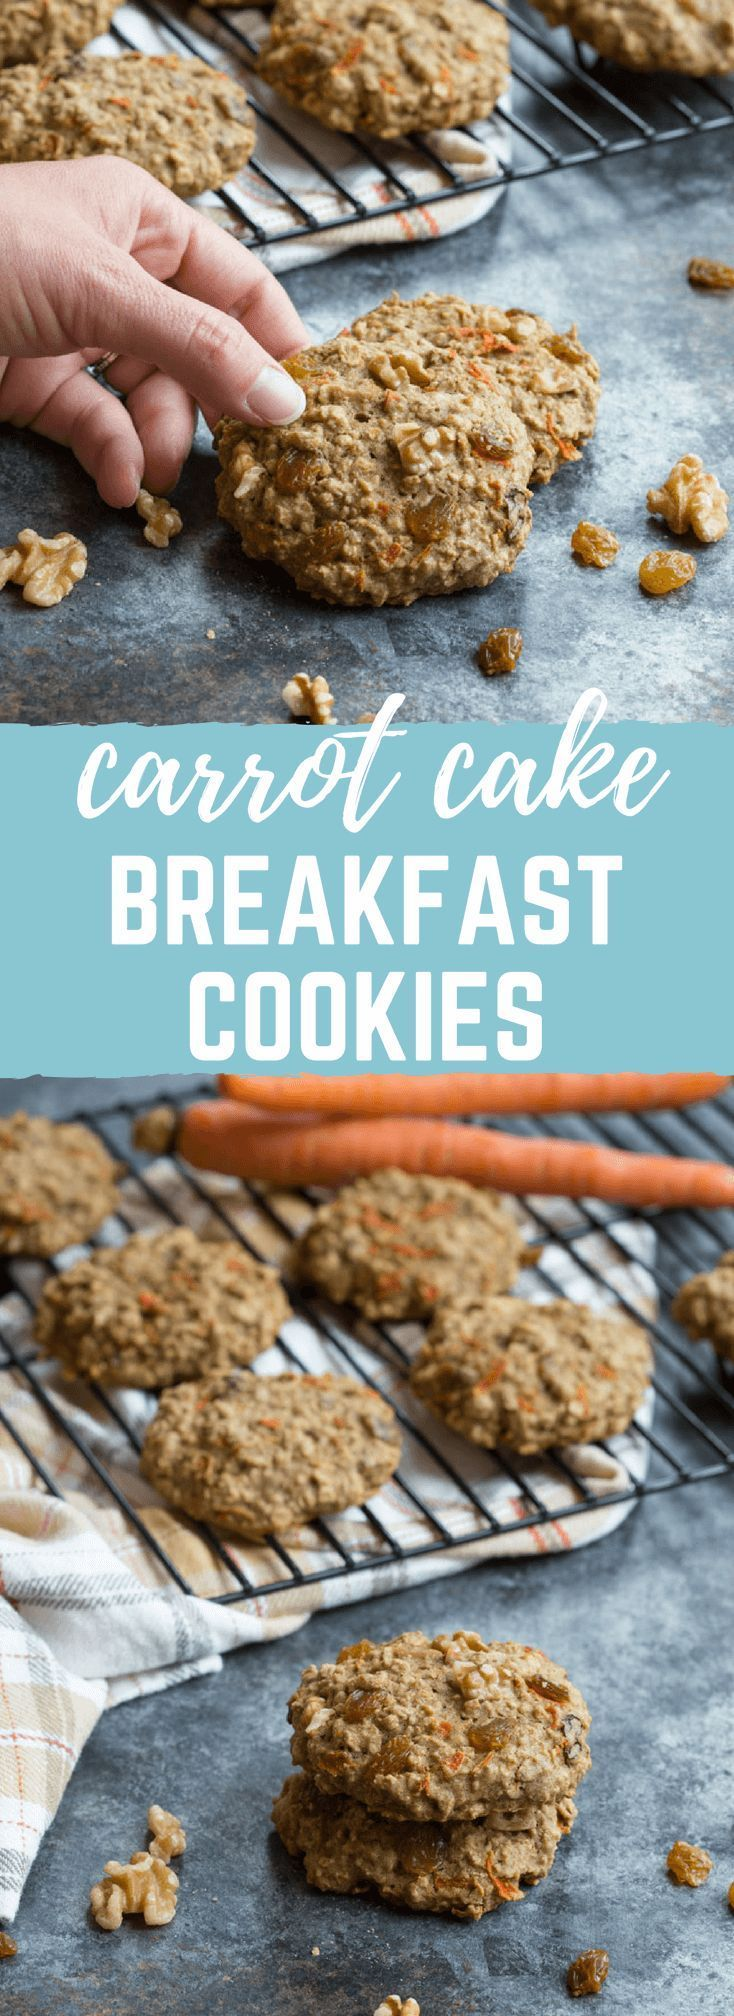 863 best Cookie Recipes images on Pinterest | Baking biscuits ...